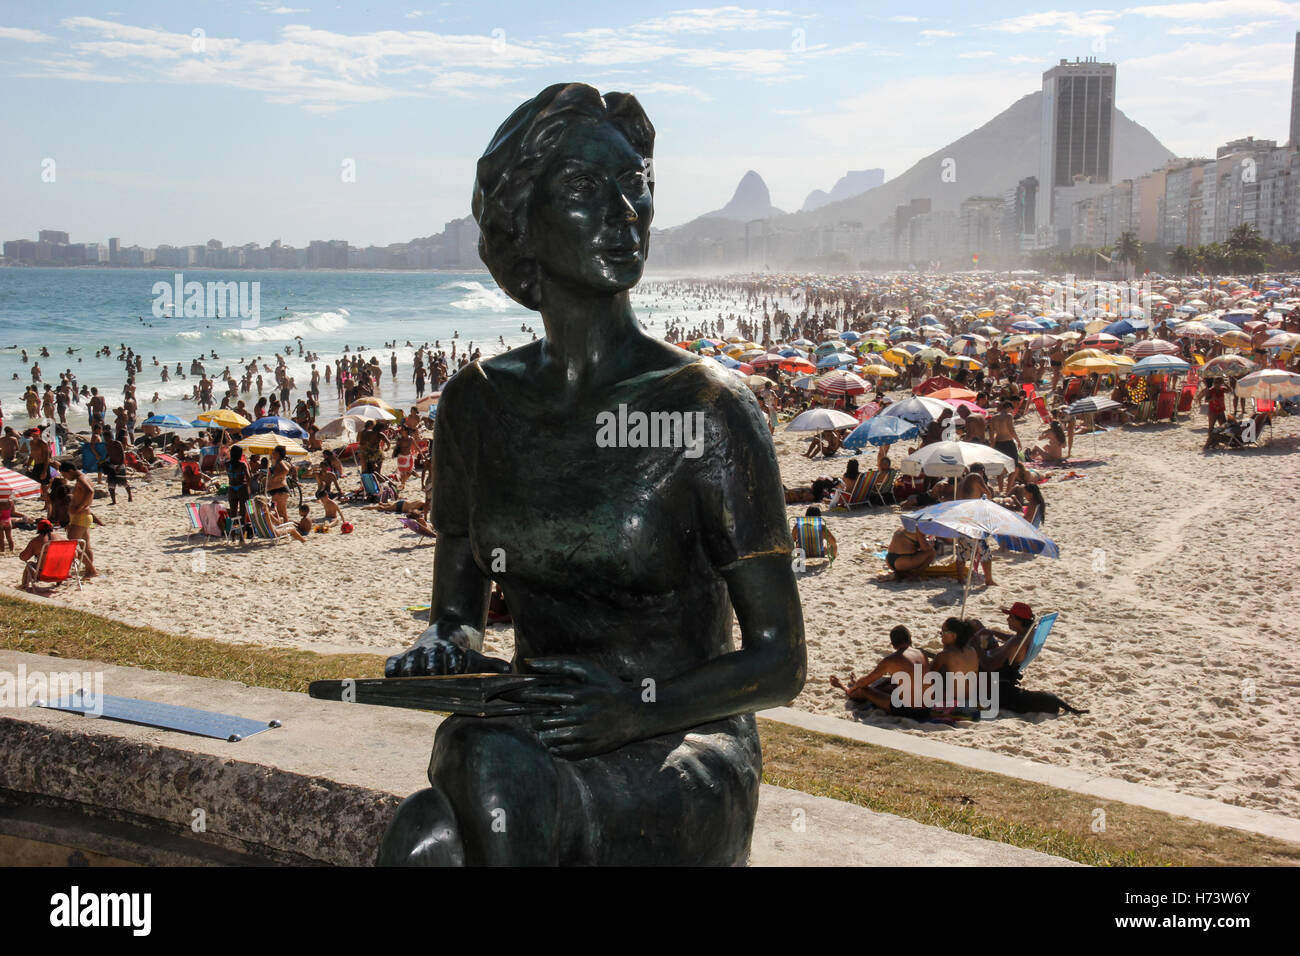 Rio de Janeiro, Brazil, November 02, 2016: Statue of Clarice Lispector (writer) at Leme Beach. Summer officially - Stock Image